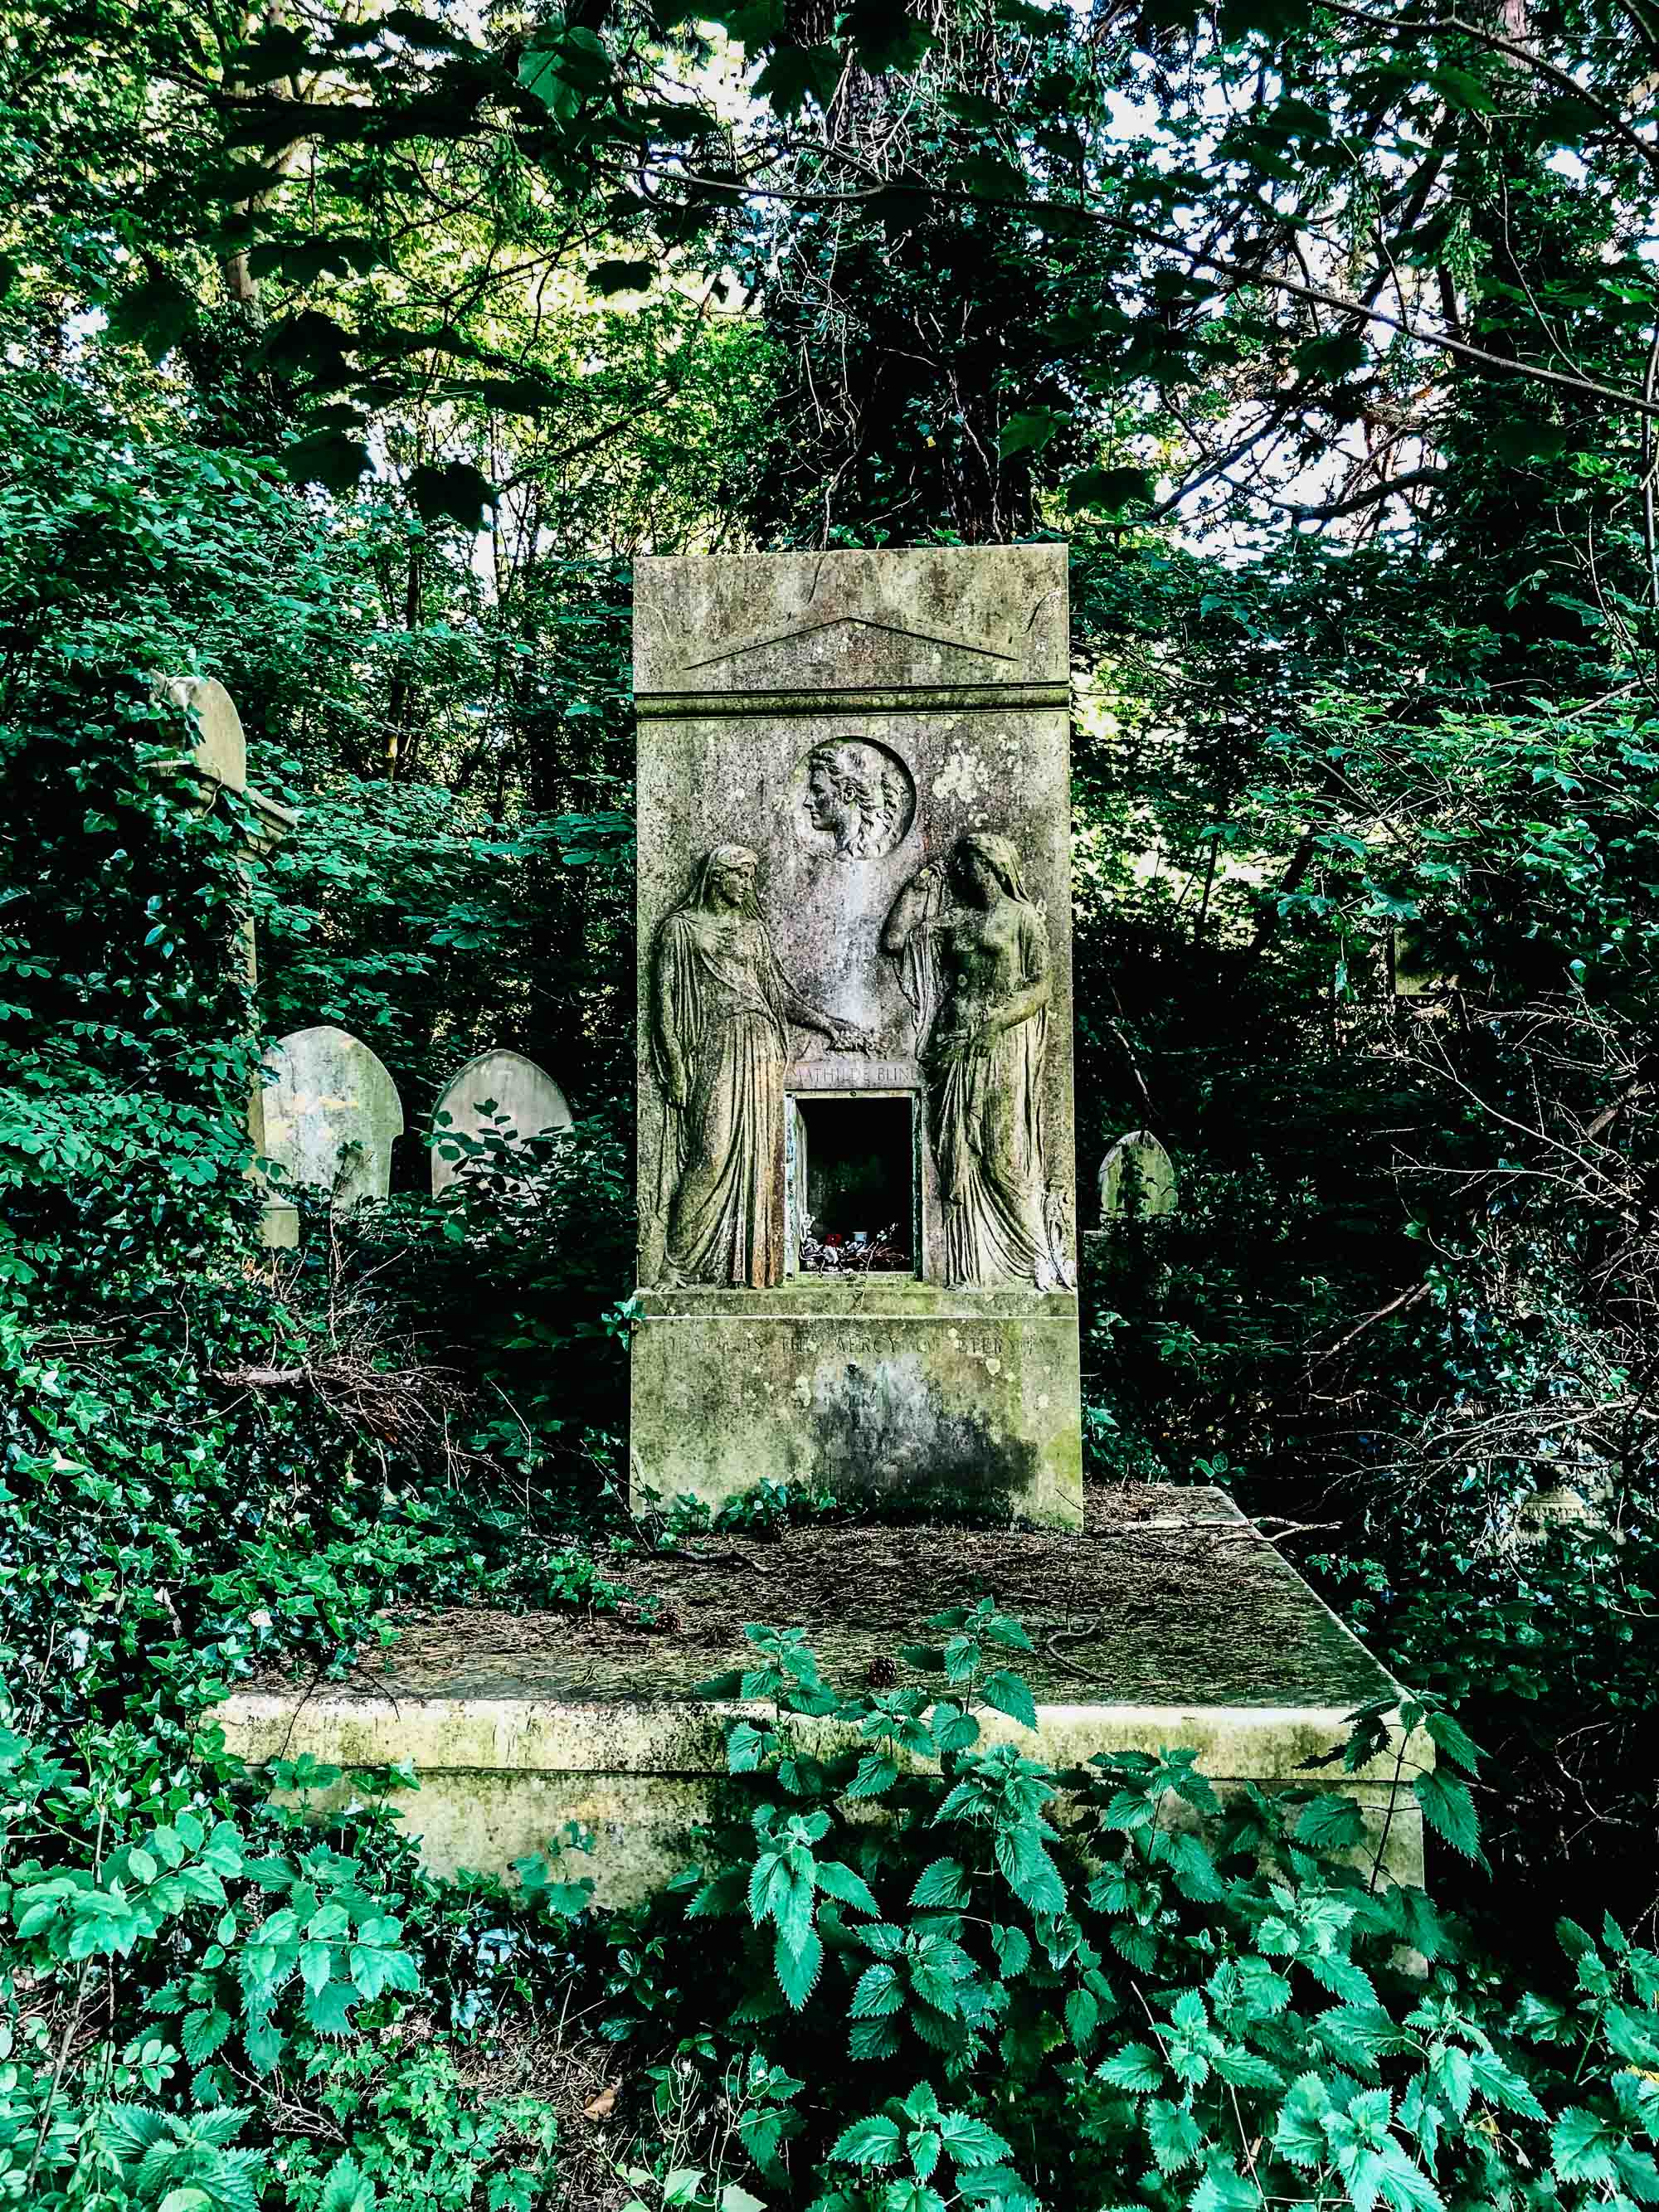 Two days in london a walking tour kale and caramel after a day of travel nearby coldfall wood was the perfect green immersionancient forest giving way to moss covered mausoleums in an overgrown cemetery solutioingenieria Choice Image